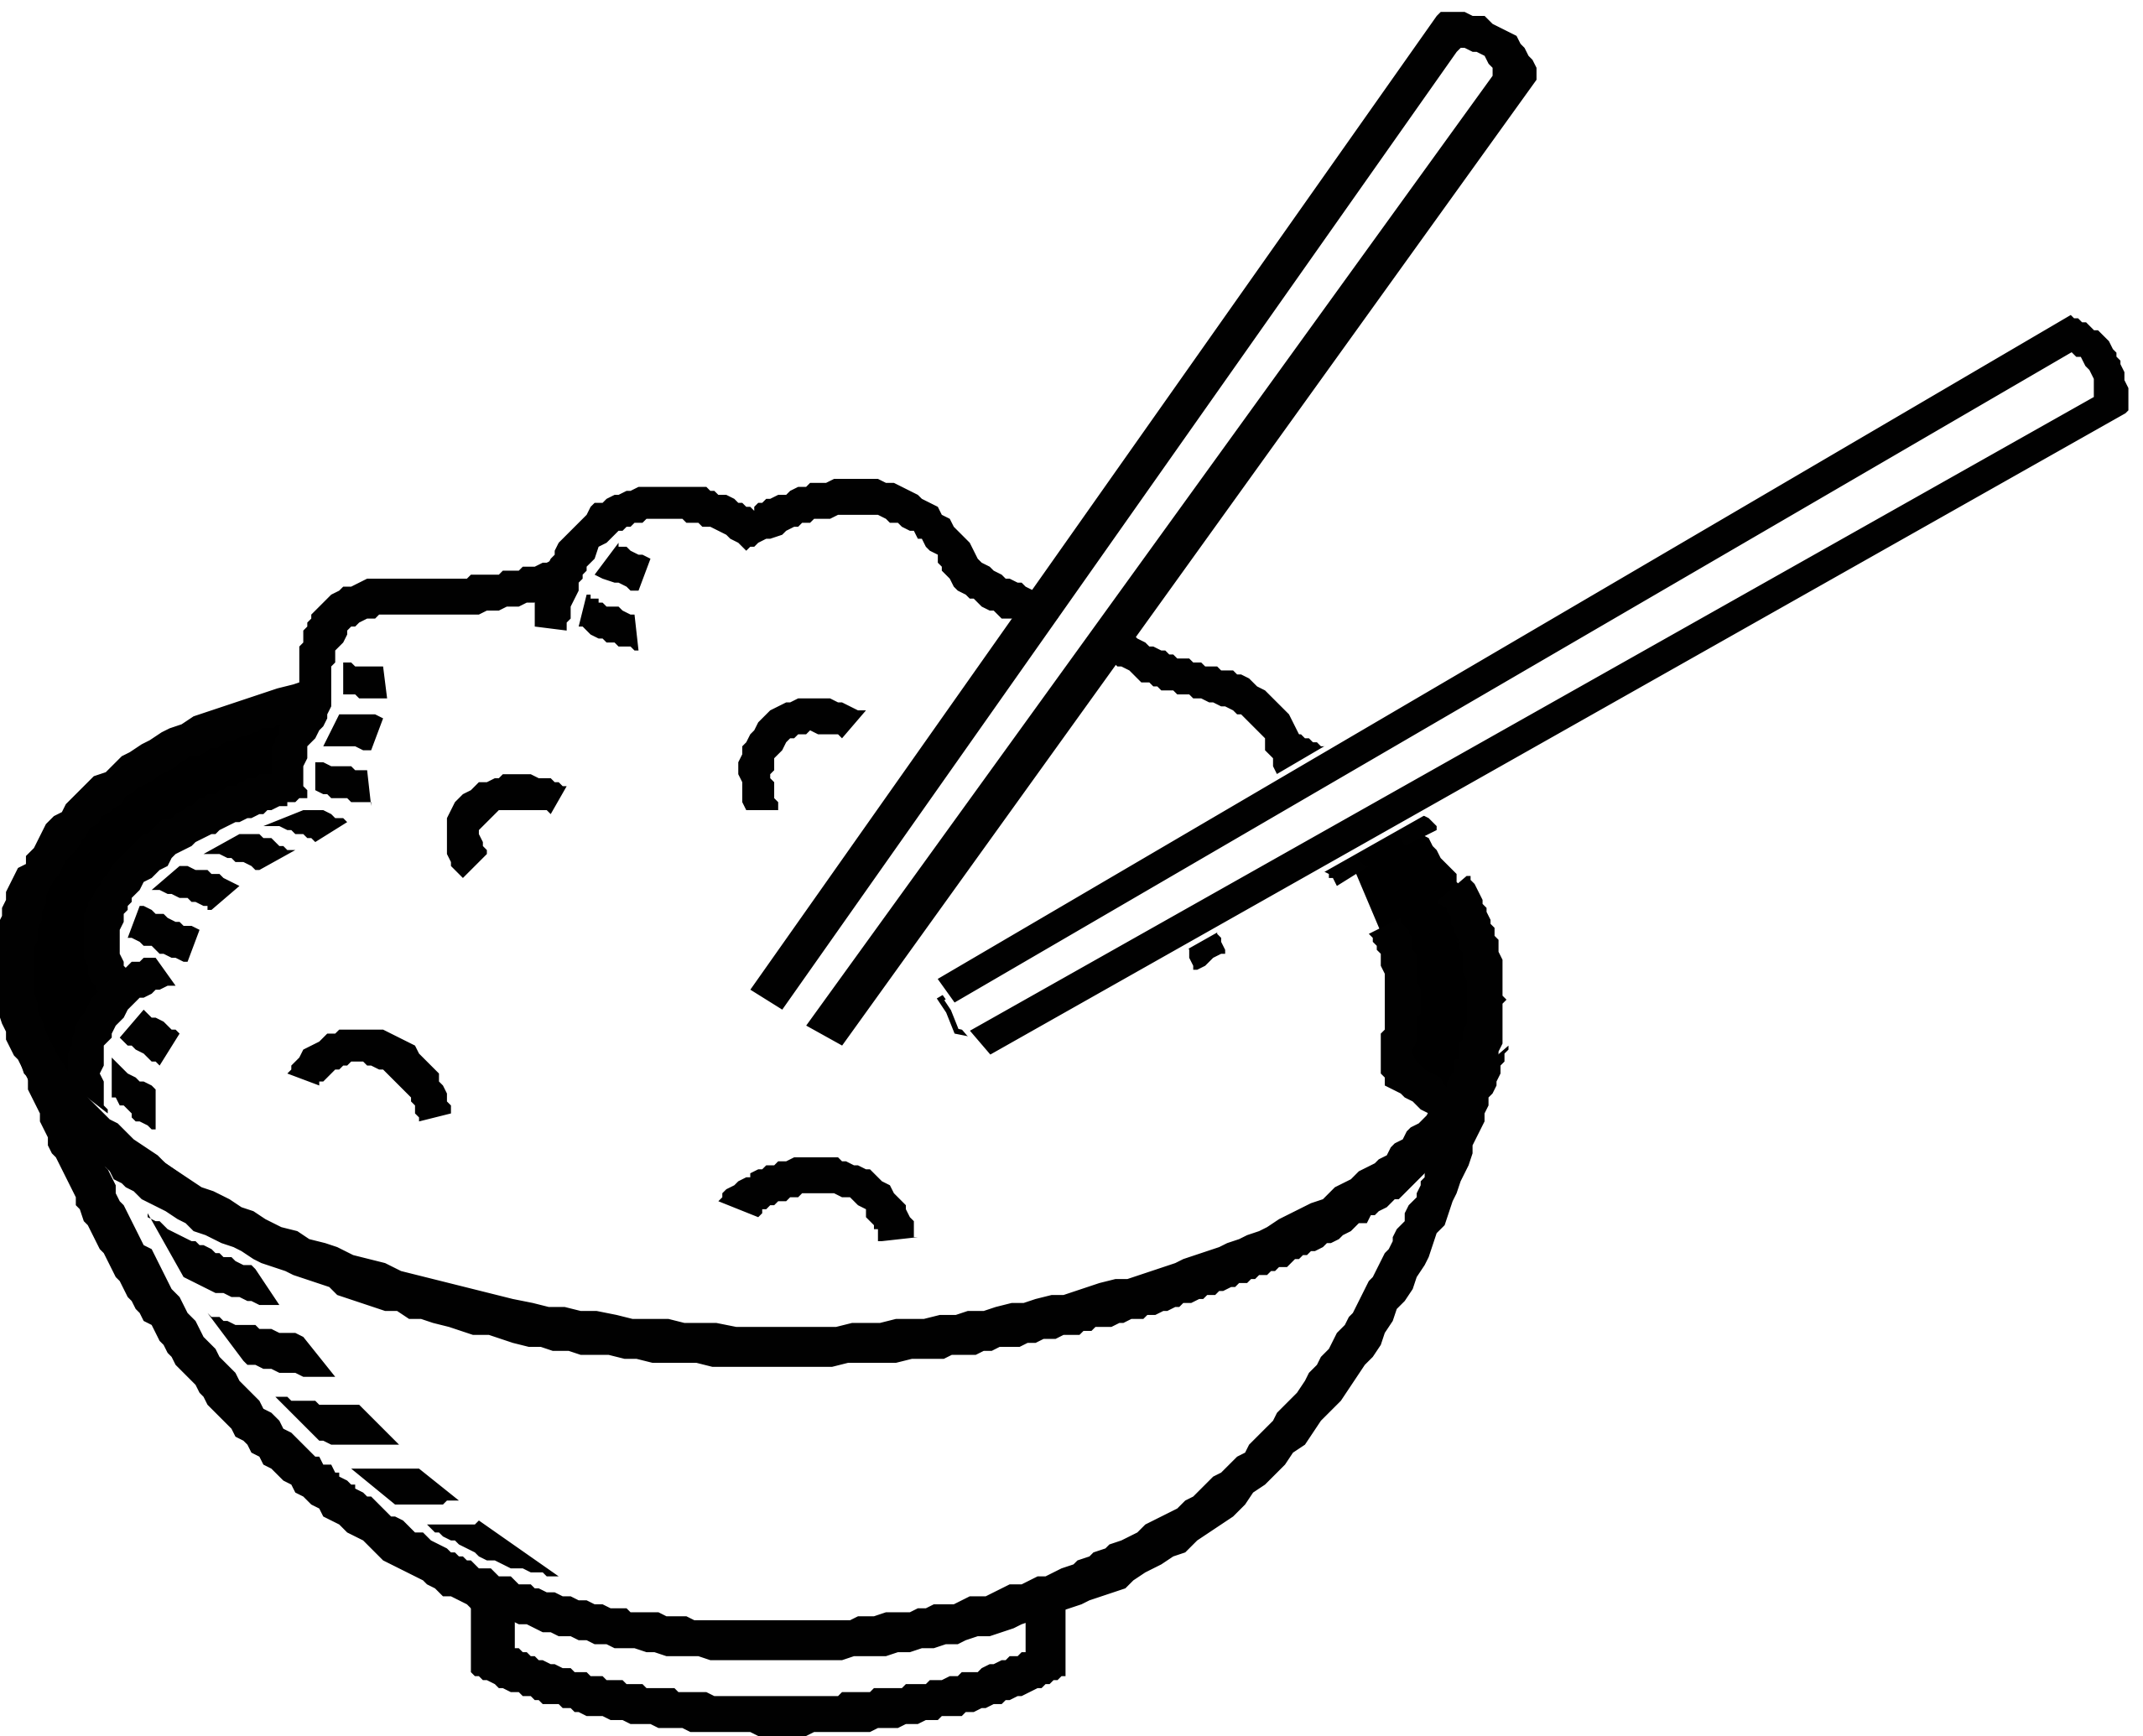 svg transparent stock Cereal panda free images. Yoyo clipart black and white